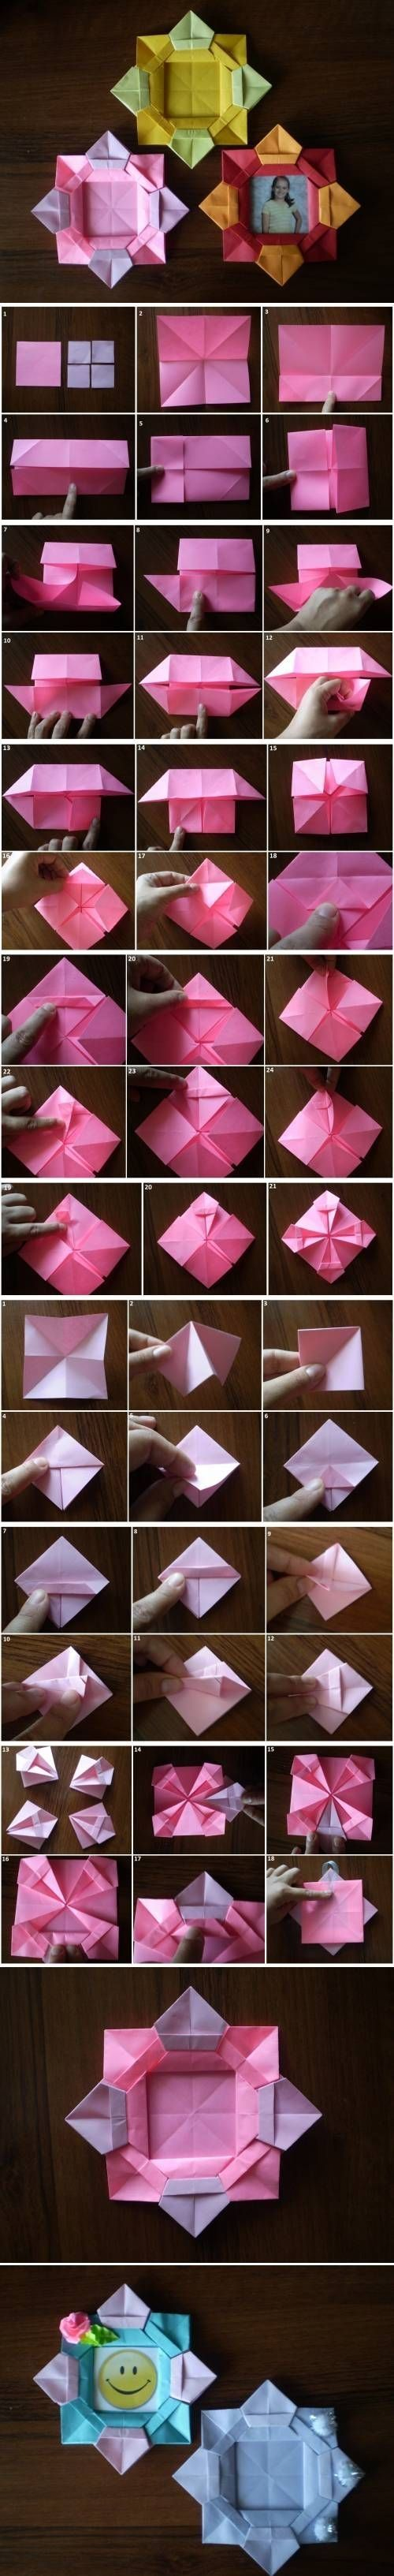 Diy Projects: Paper Flower Picture Frame